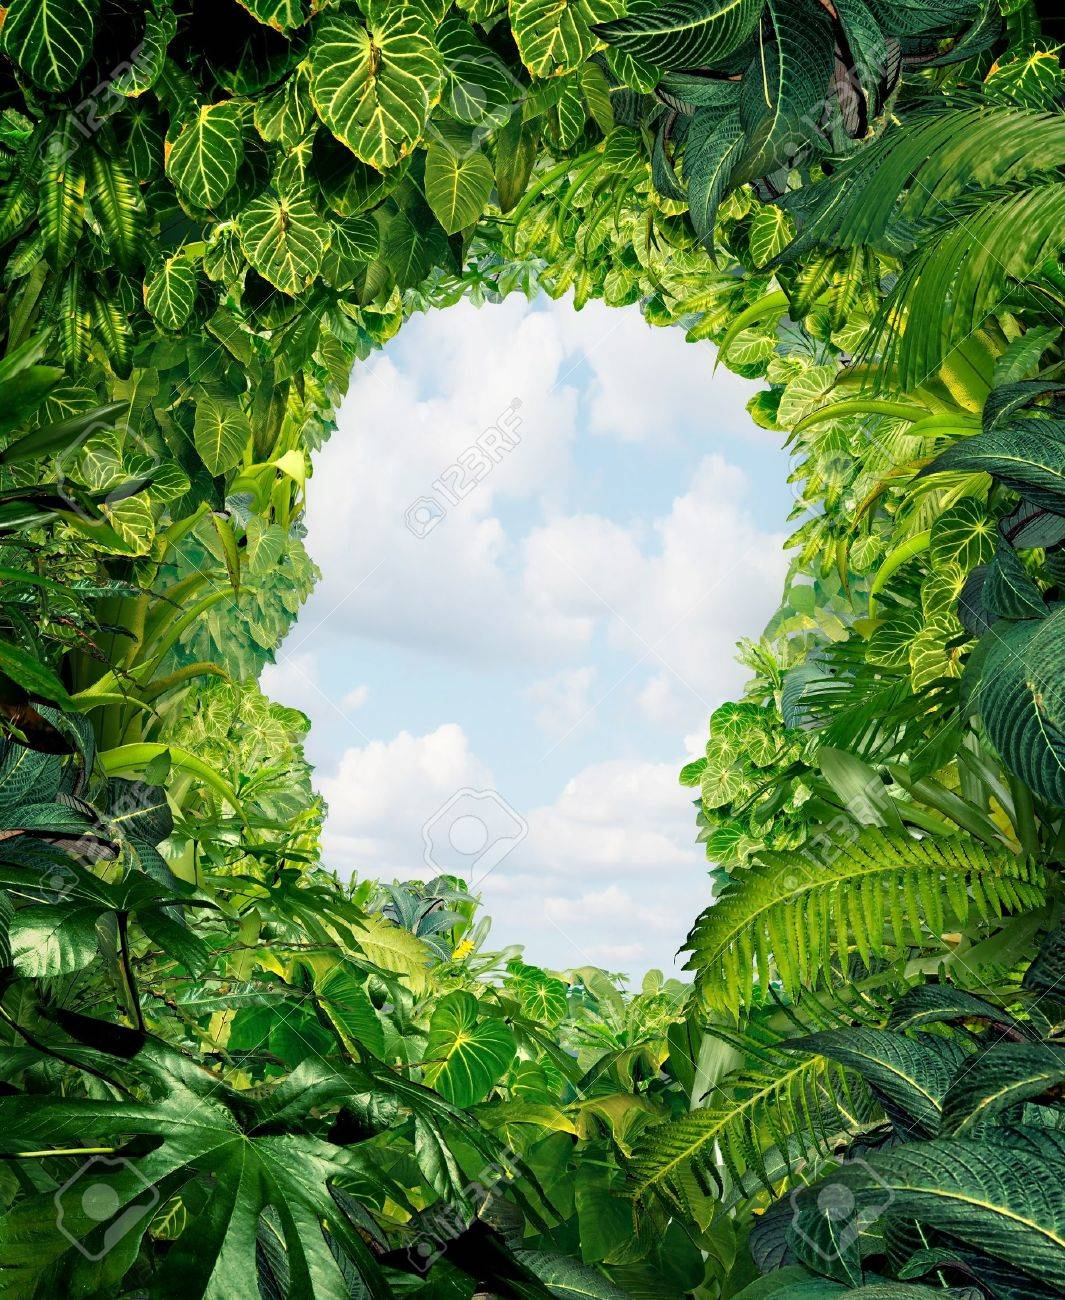 Find your way out from the dark danger of the jungle of uncertainty and confusion with rainforest plants in the shape of a human head leading to an open sky of freedom Stock Photo - 17229344